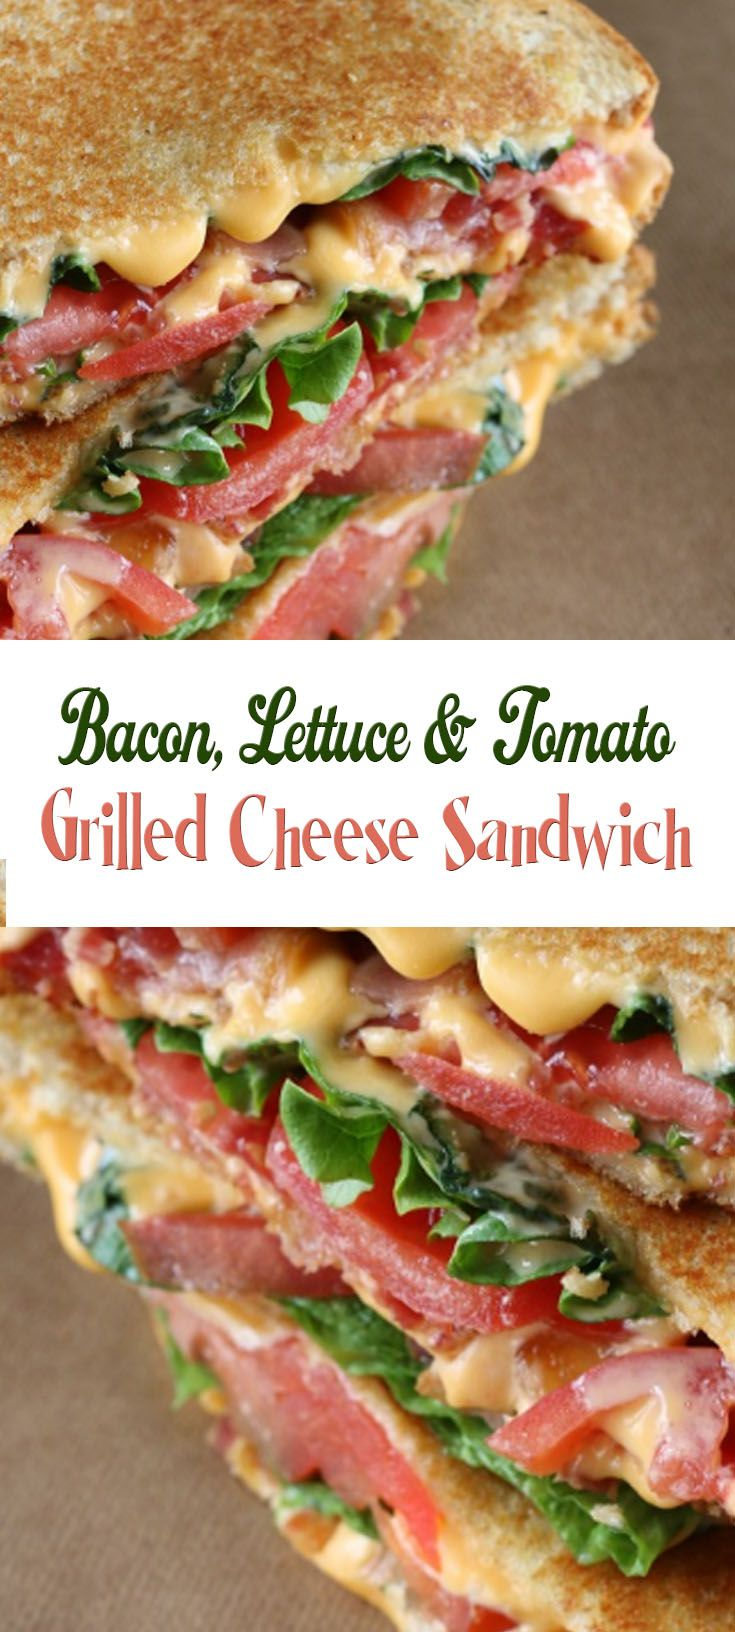 Best 25+ Cold sandwiches ideas on Pinterest | Healthy cold ...